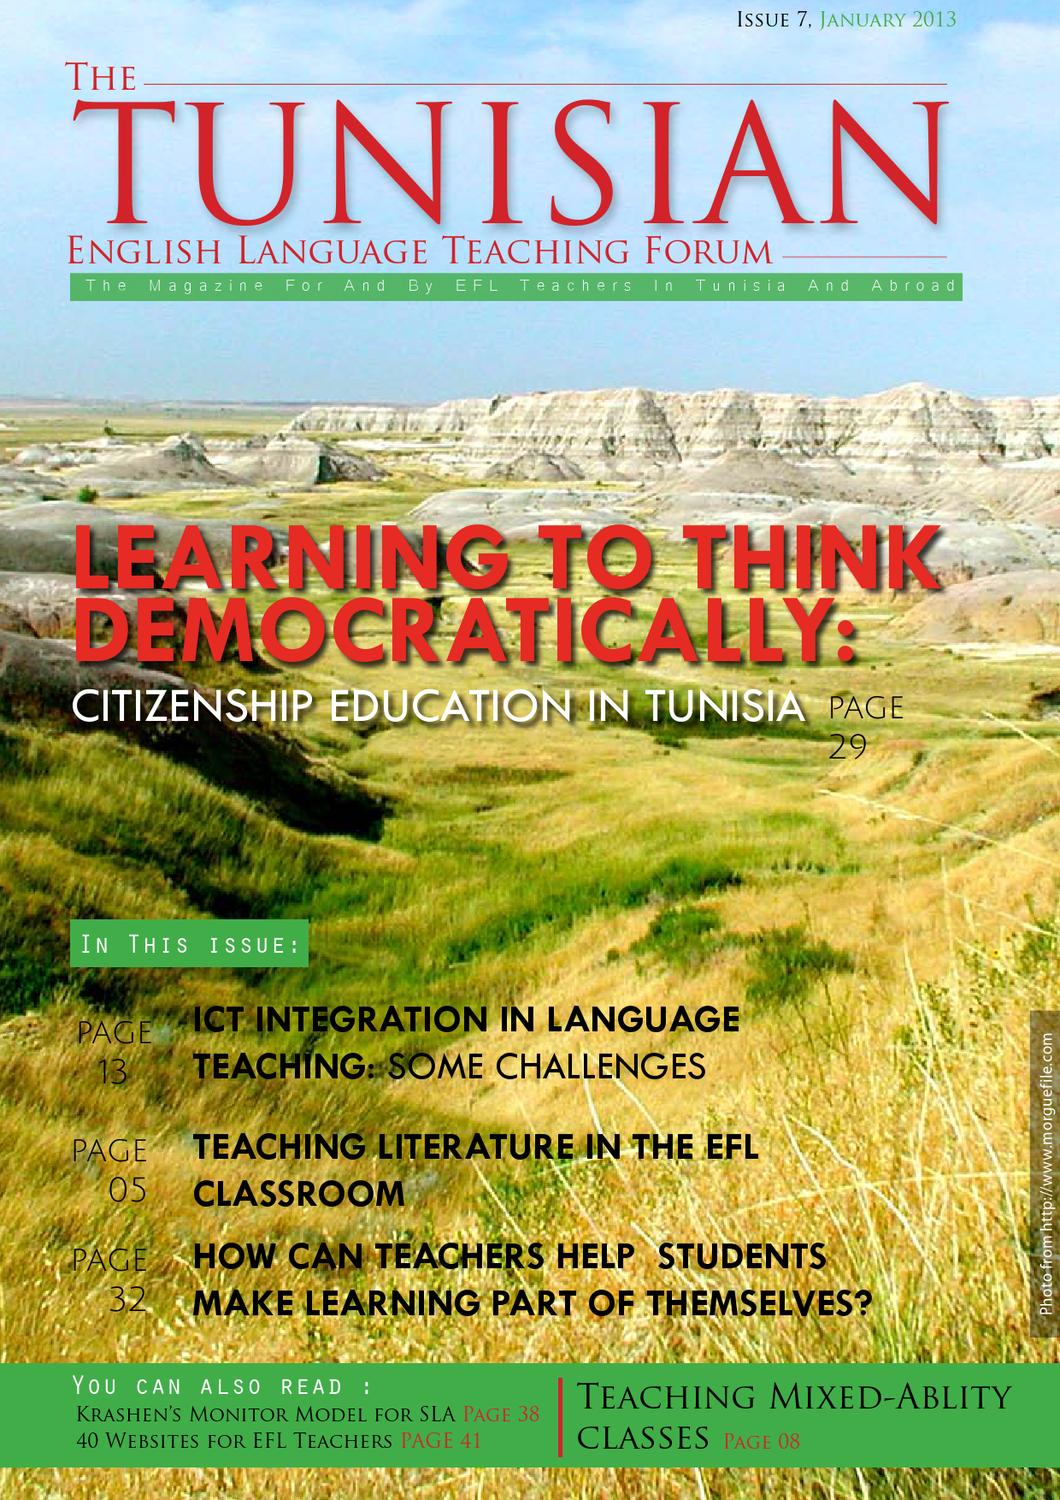 exploring identity through social location maps and language by the tunisian elt forum magazine issue 7